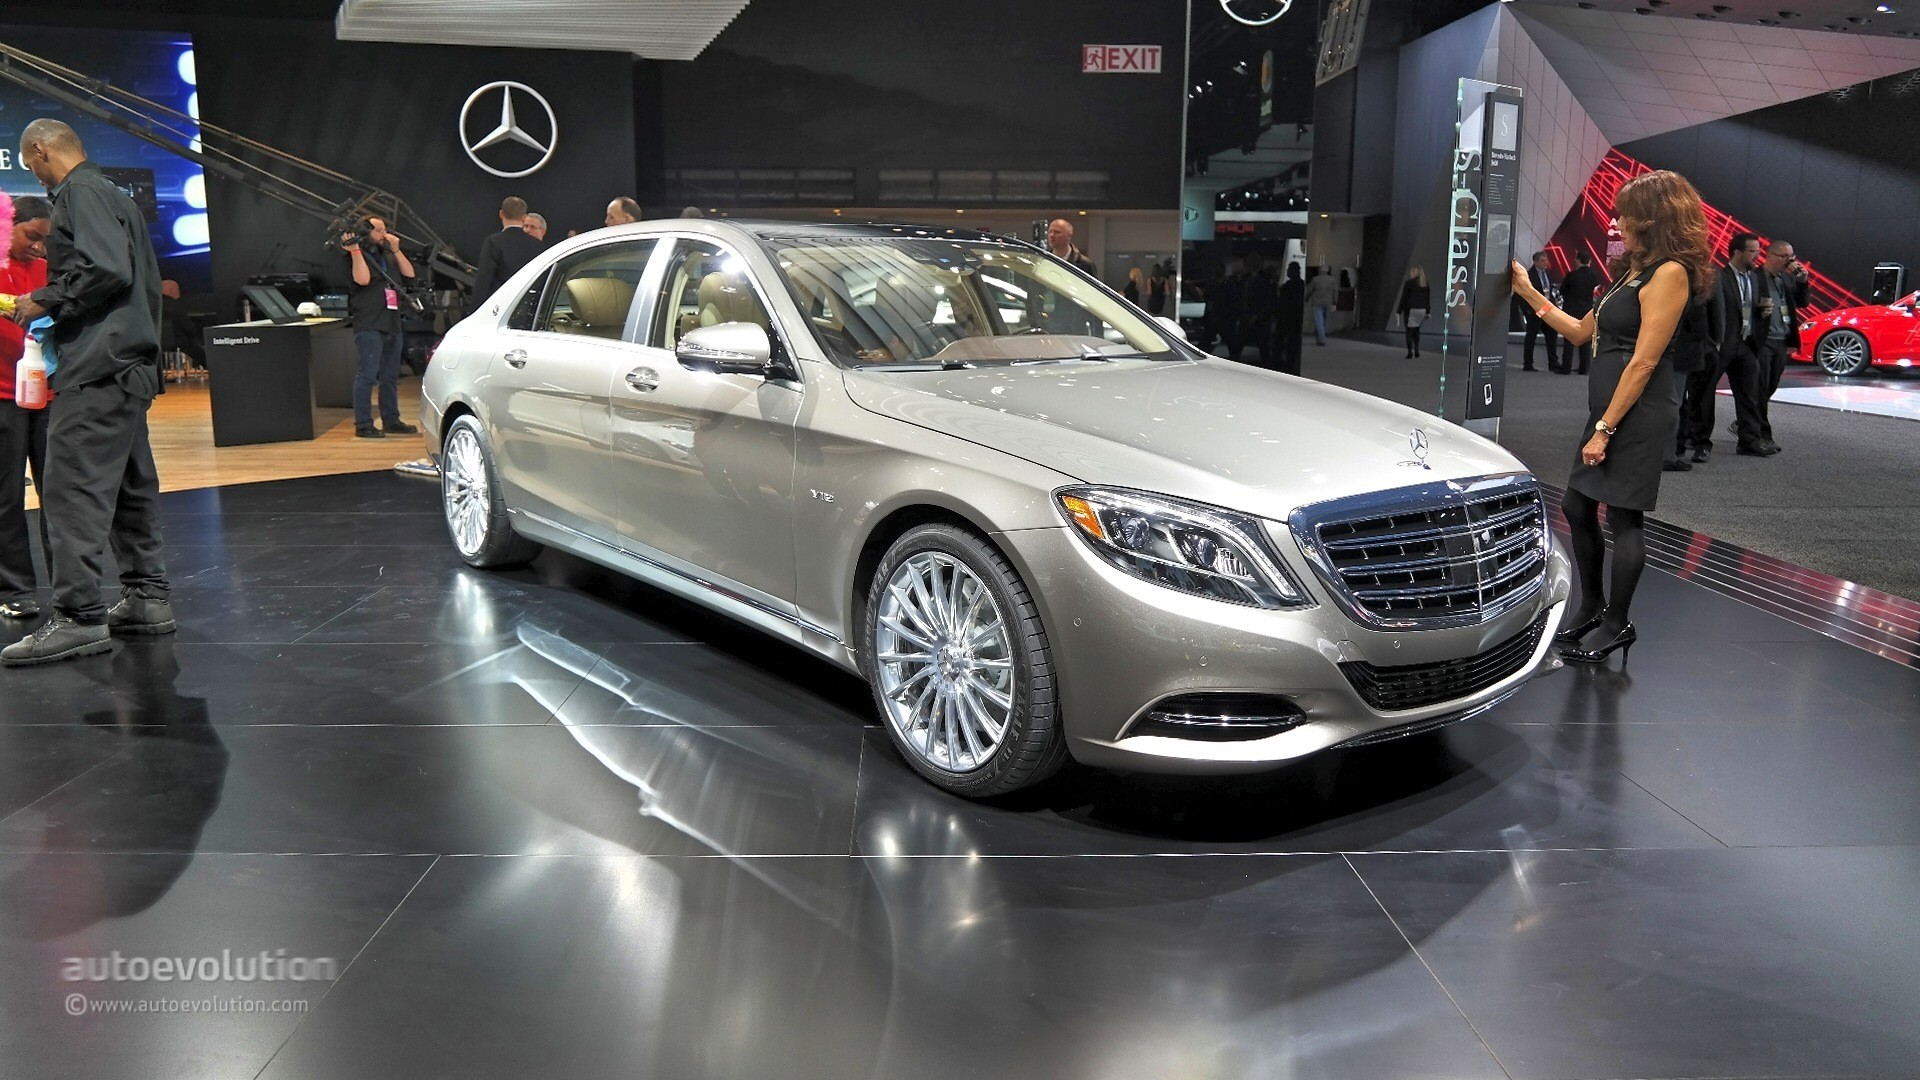 China Gets Mercedes-Maybach Models First, in S600 and S400 Guises ...